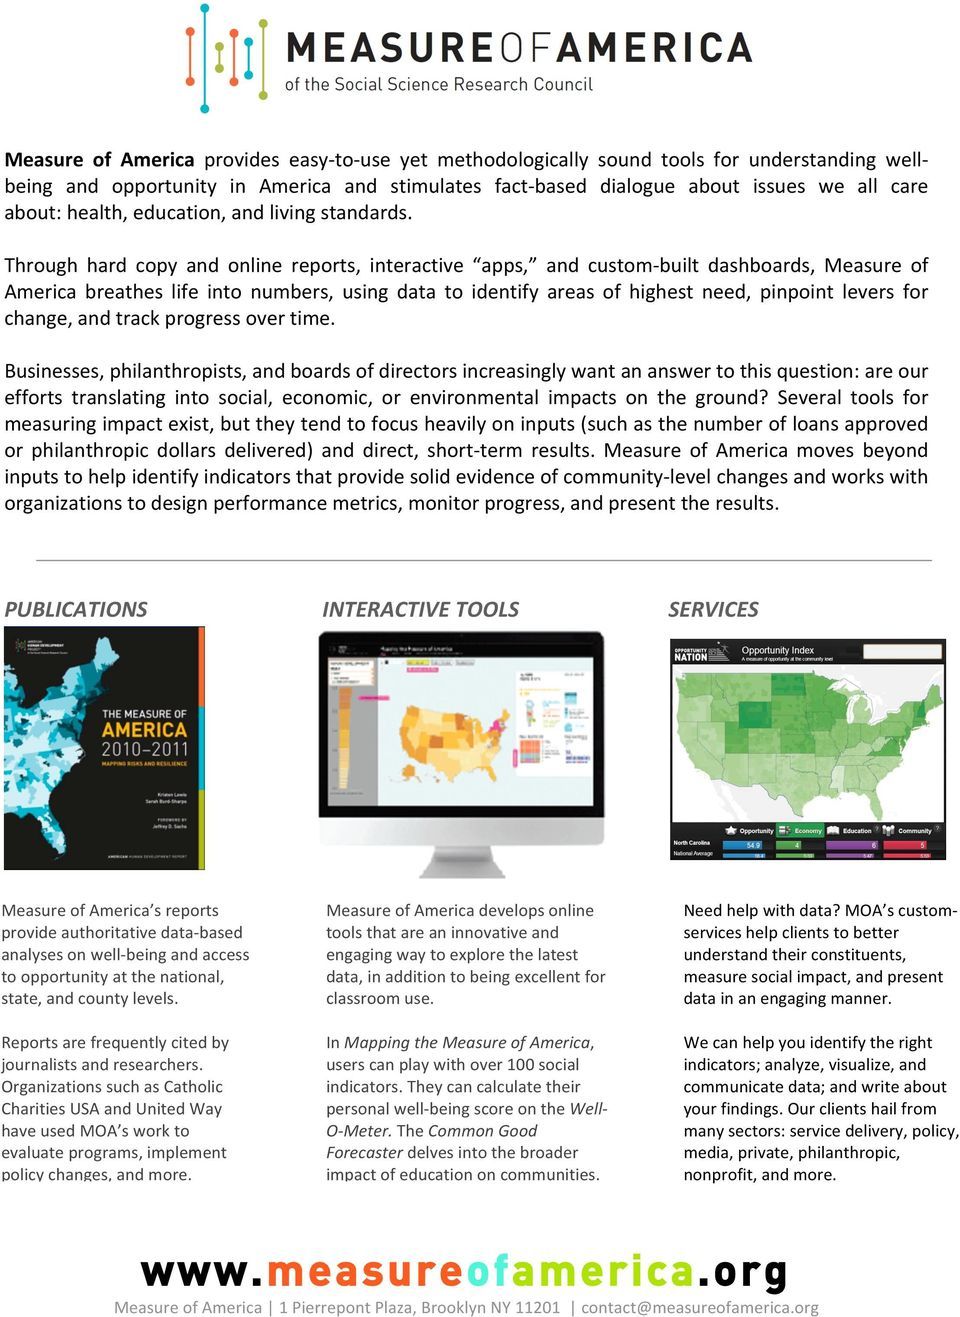 Through hard copy and online reports, interactive apps, and custom built dashboards, Measure of America breathes life into numbers, using data to identify areas of highest need, pinpoint levers for